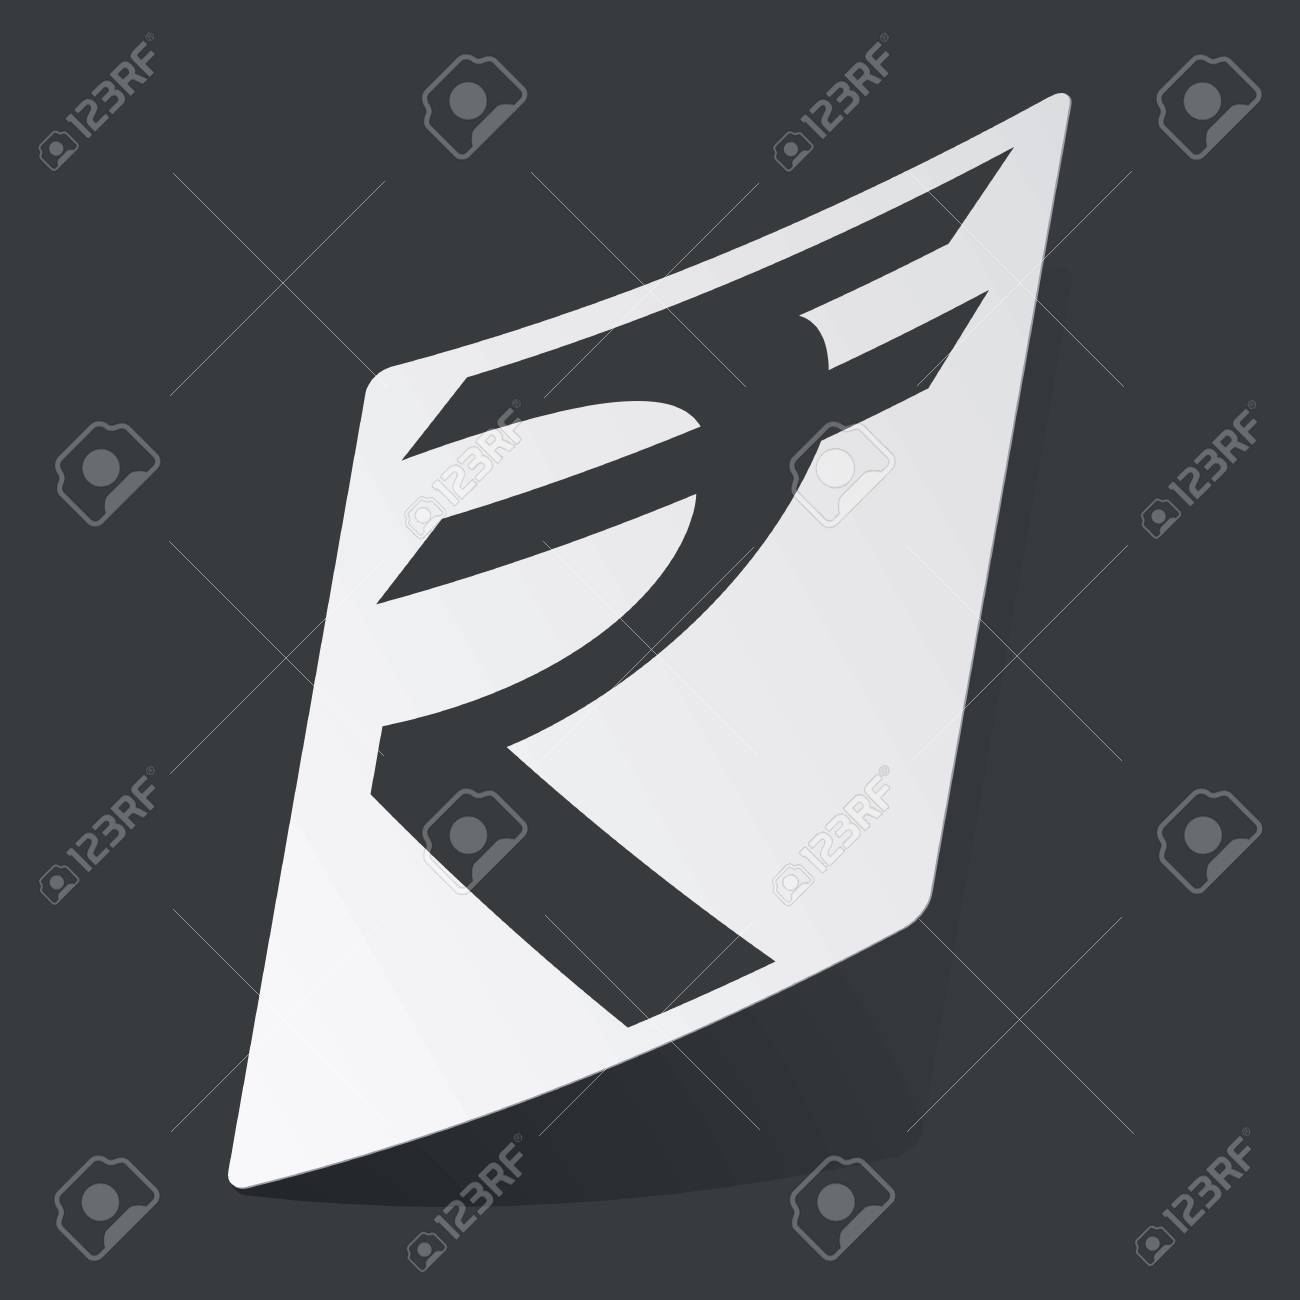 White sticker with black indian rupee symbol on black background white sticker with black indian rupee symbol on black background stock vector 42338496 biocorpaavc Choice Image